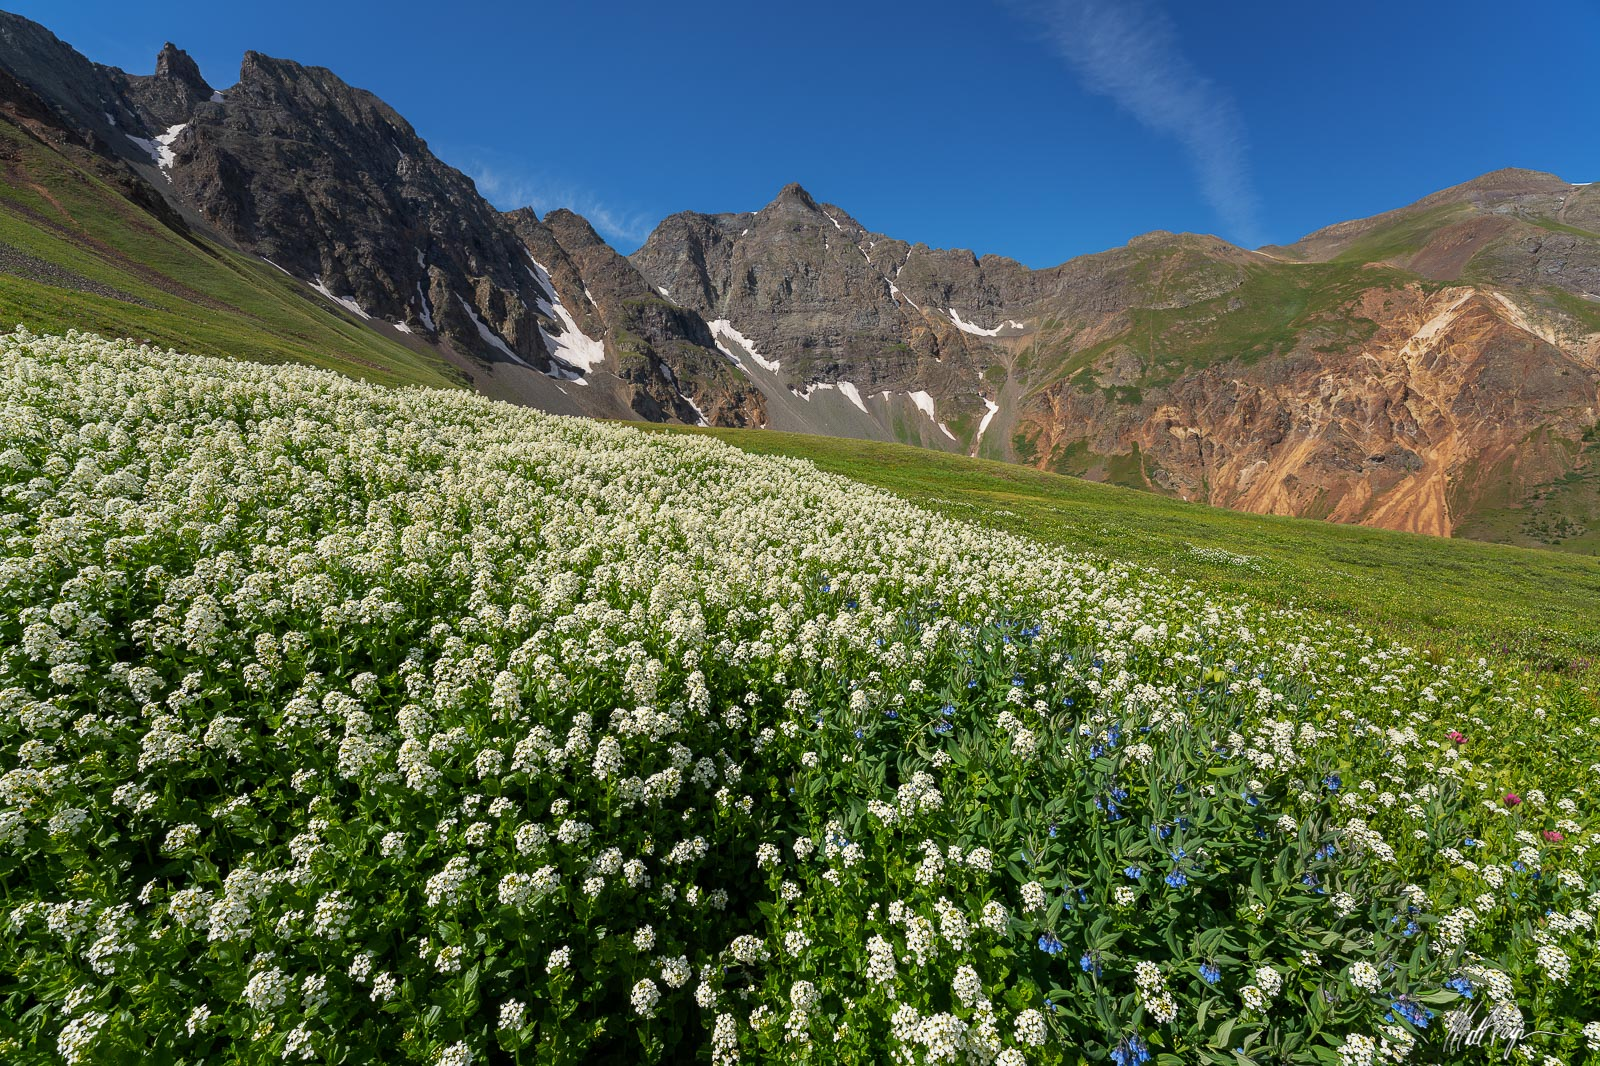 This huge cluster of Heartleaf Bittercress wildflowers was quite impressive to find and photograph beneath Storm Peak near Silverton...